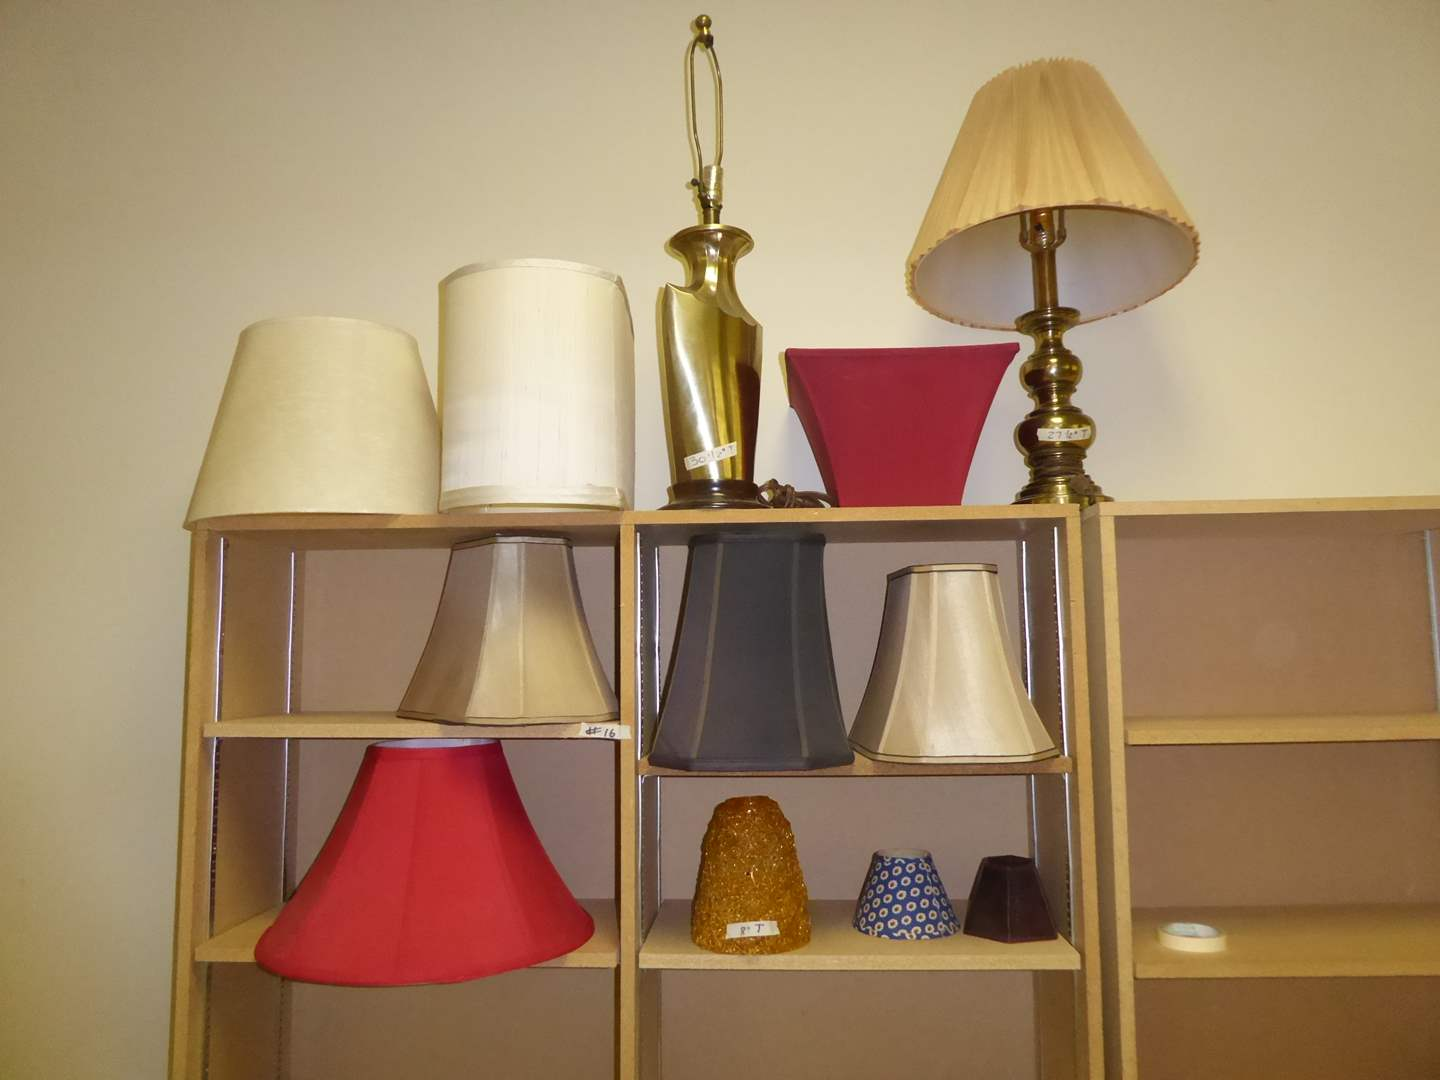 Lot # 16 - Two Brass Lamps & Miscellaneous Lamp Shades  (main image)